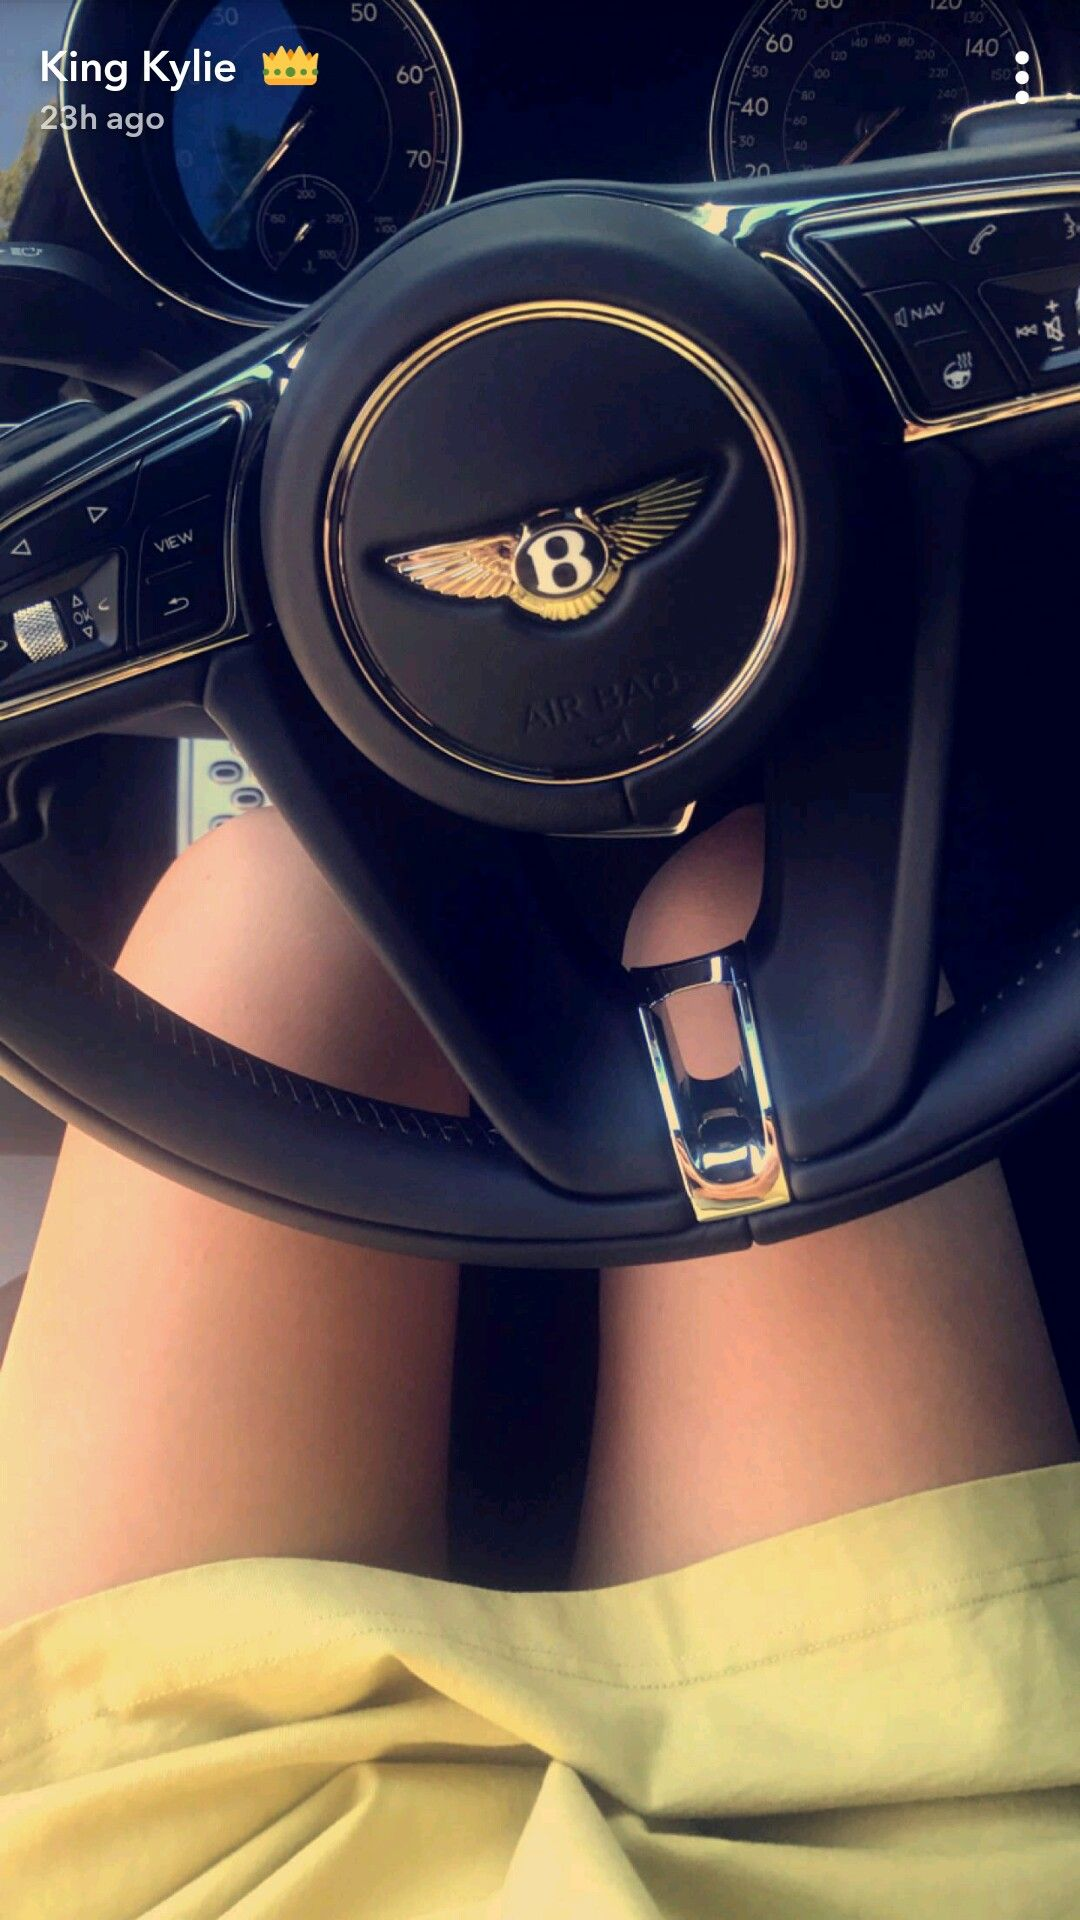 Bentley car image as seen on Kylie Jenner s Snapchat